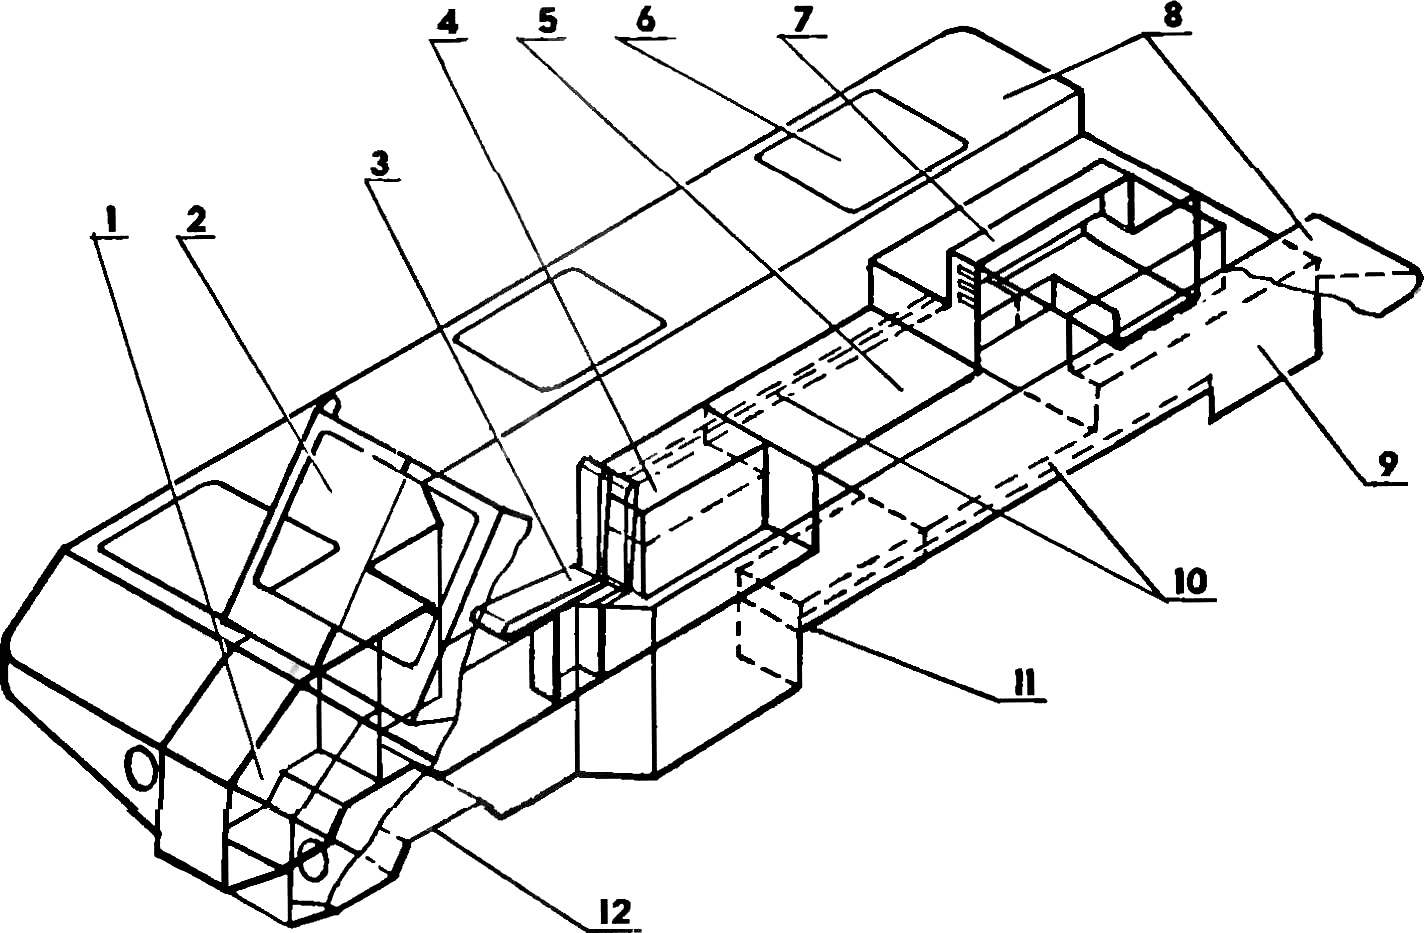 Fig. 4. The body of the Rover.